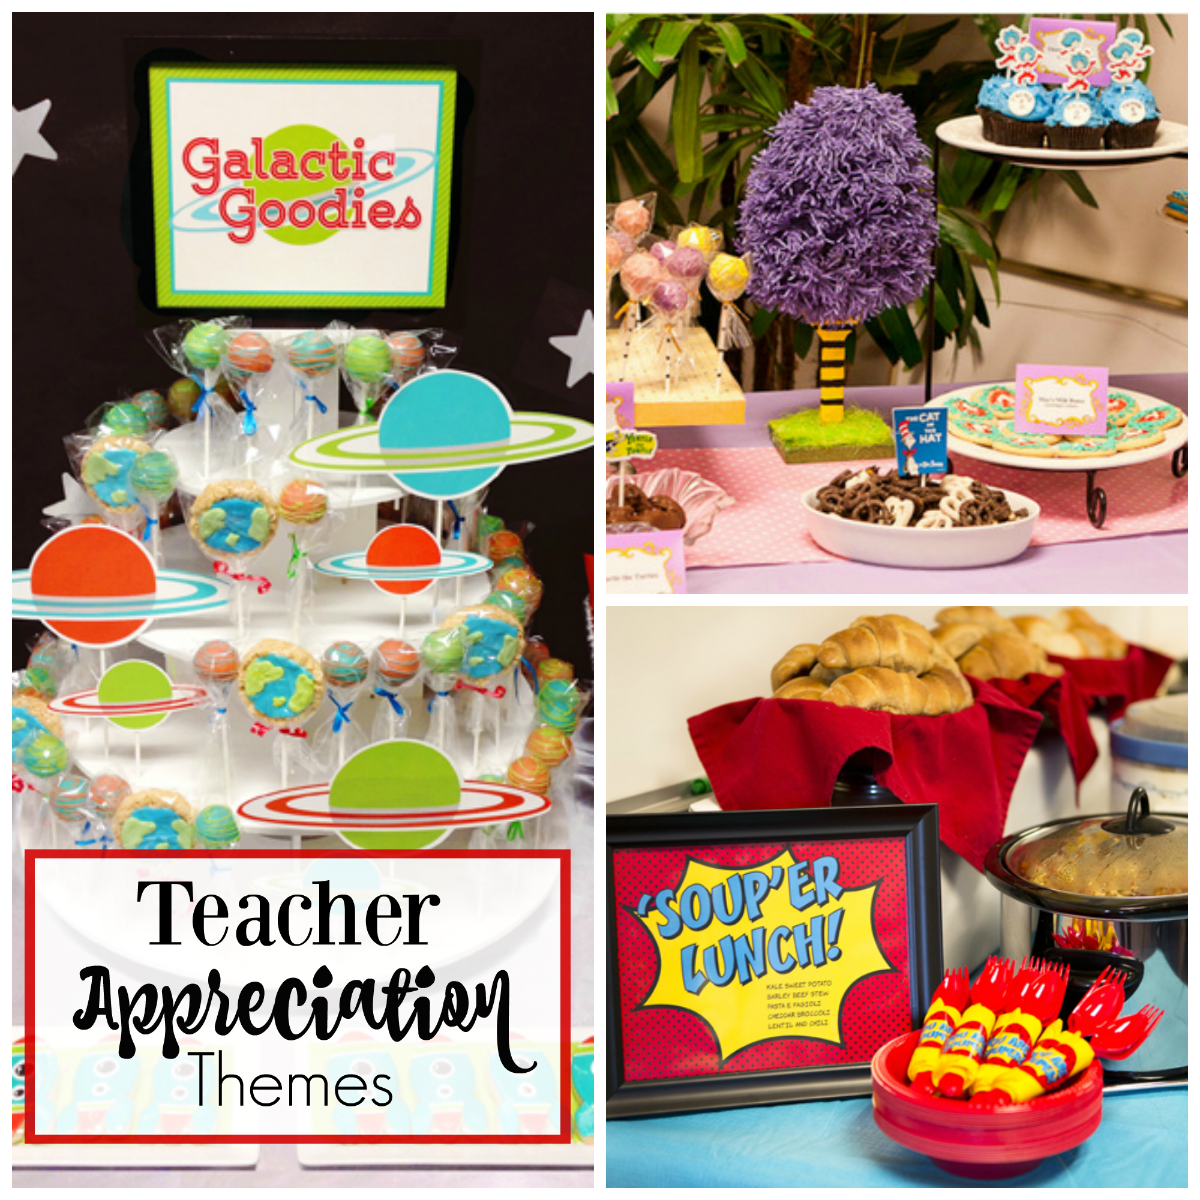 Teacher Appreciation Theme Ideas